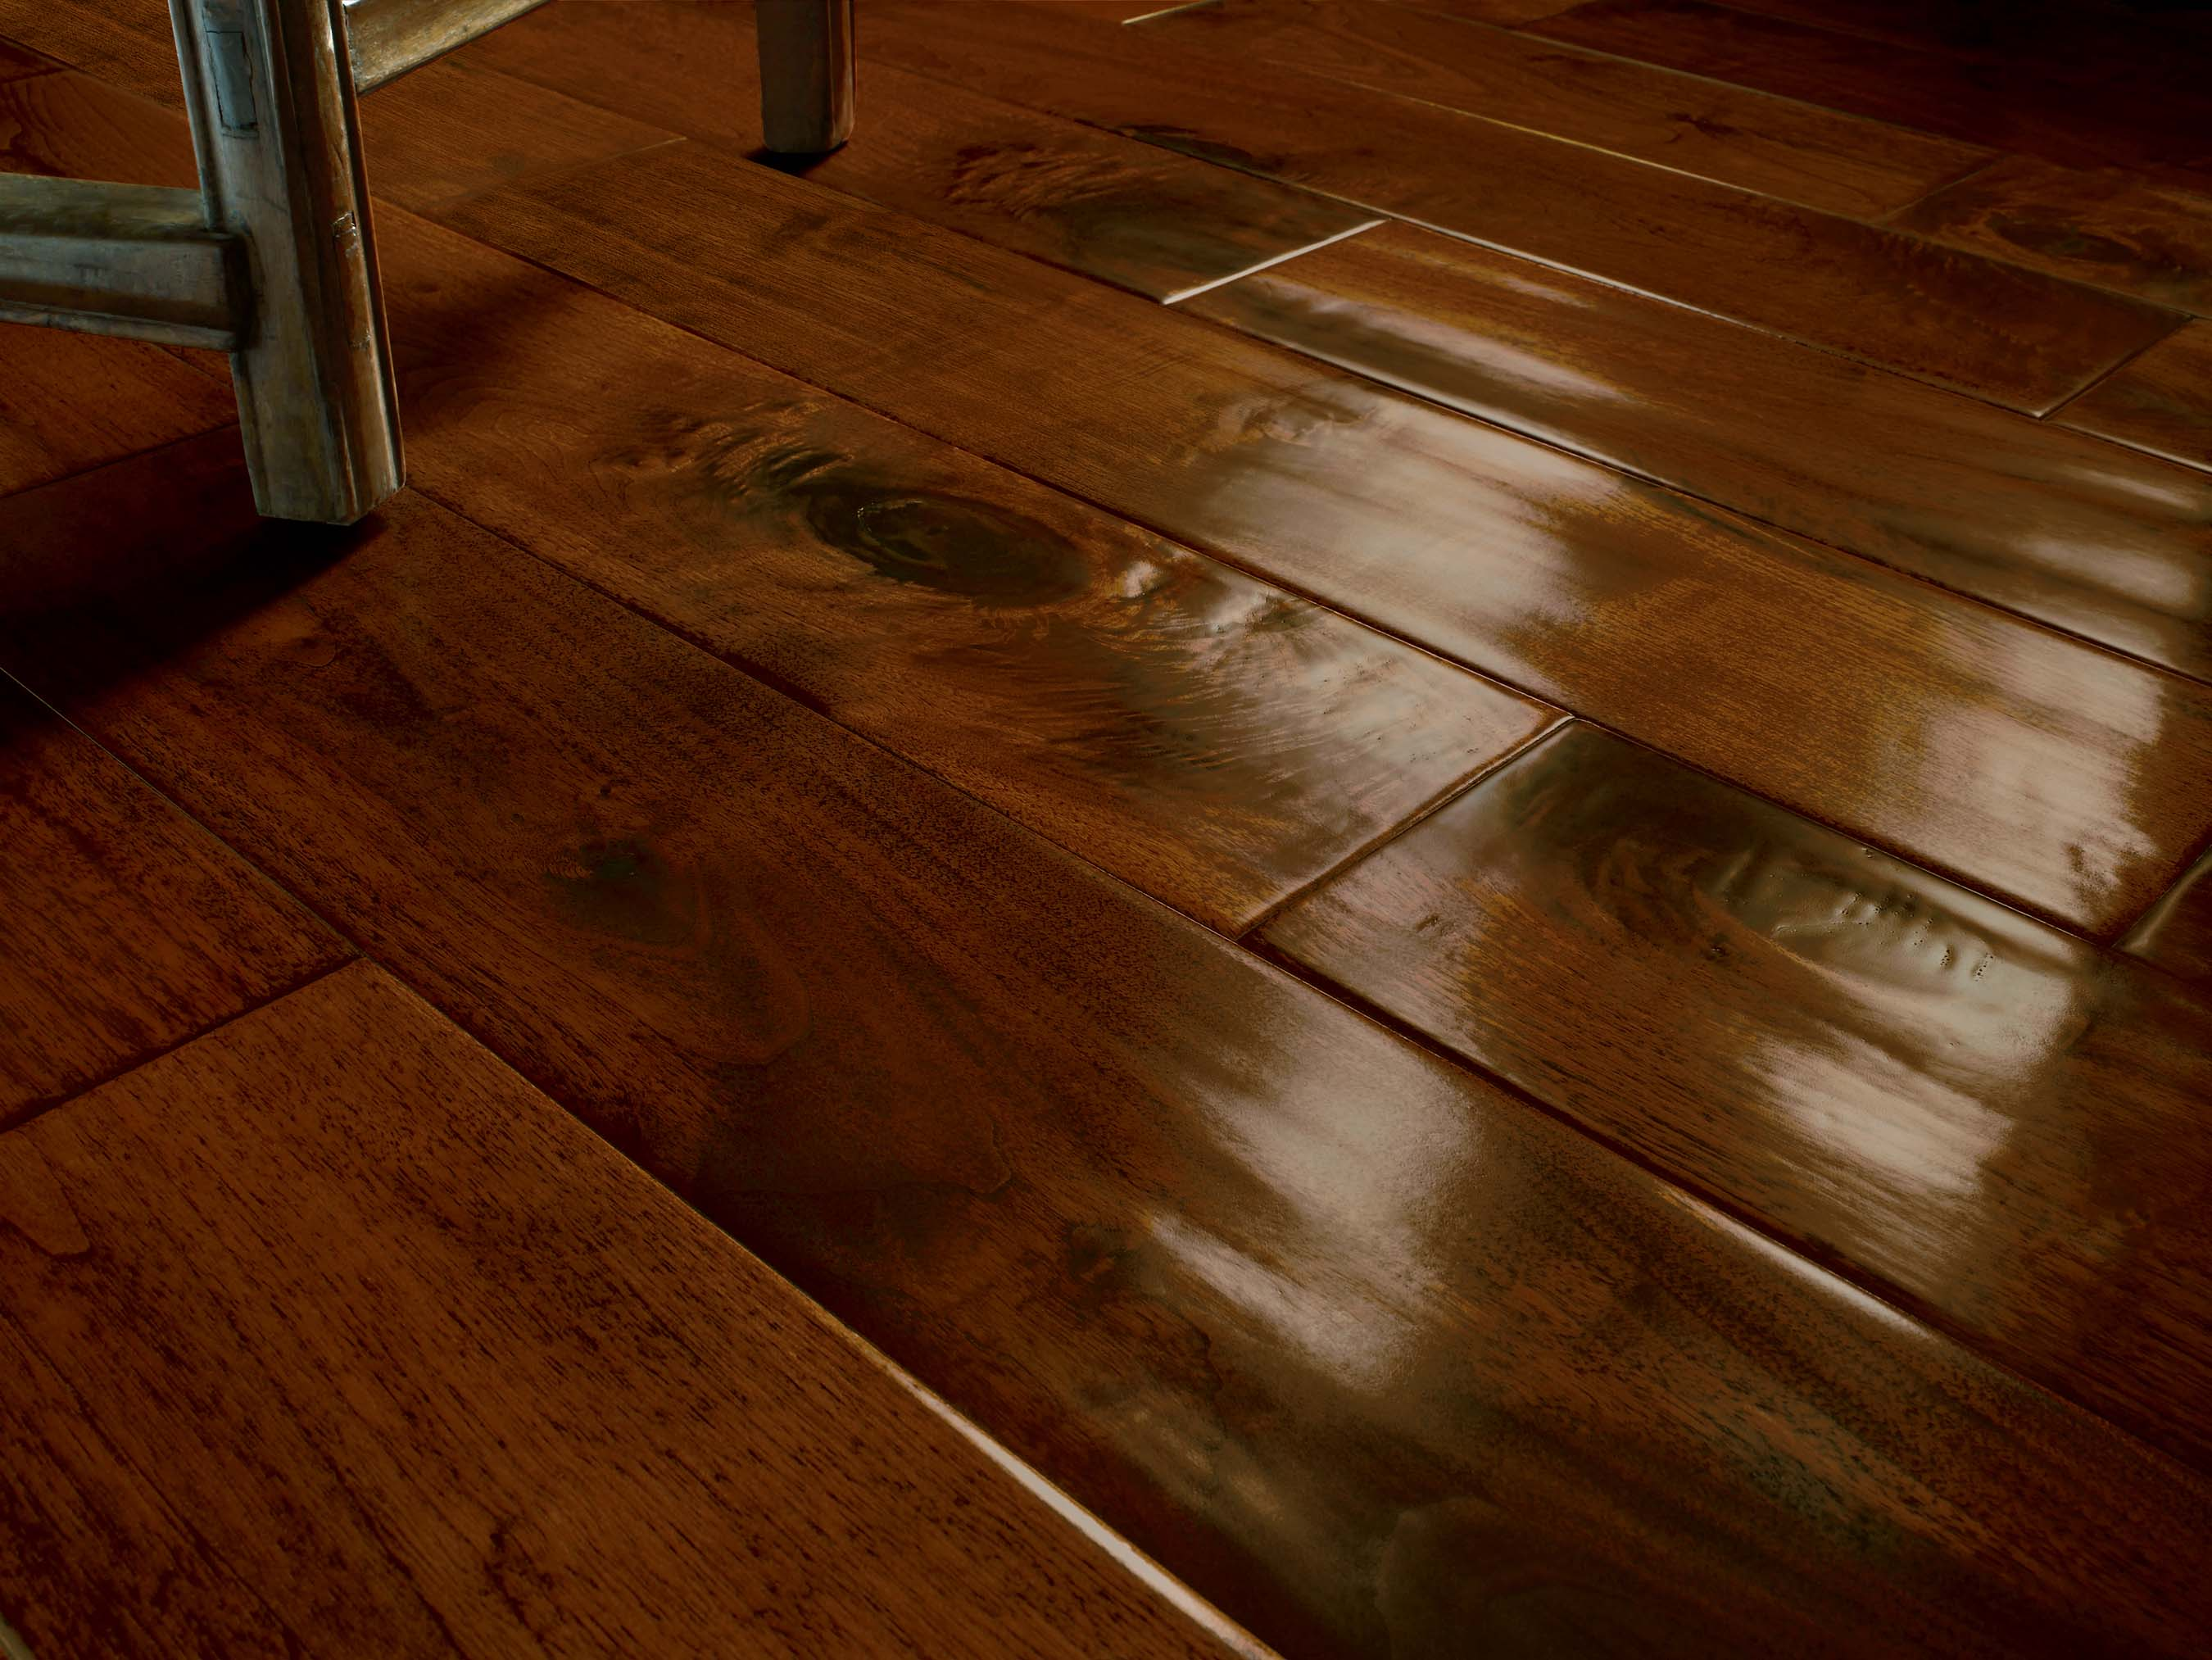 Allure Flooring - 2018-2019 New Car Reviews by Javier M. Rodriguez